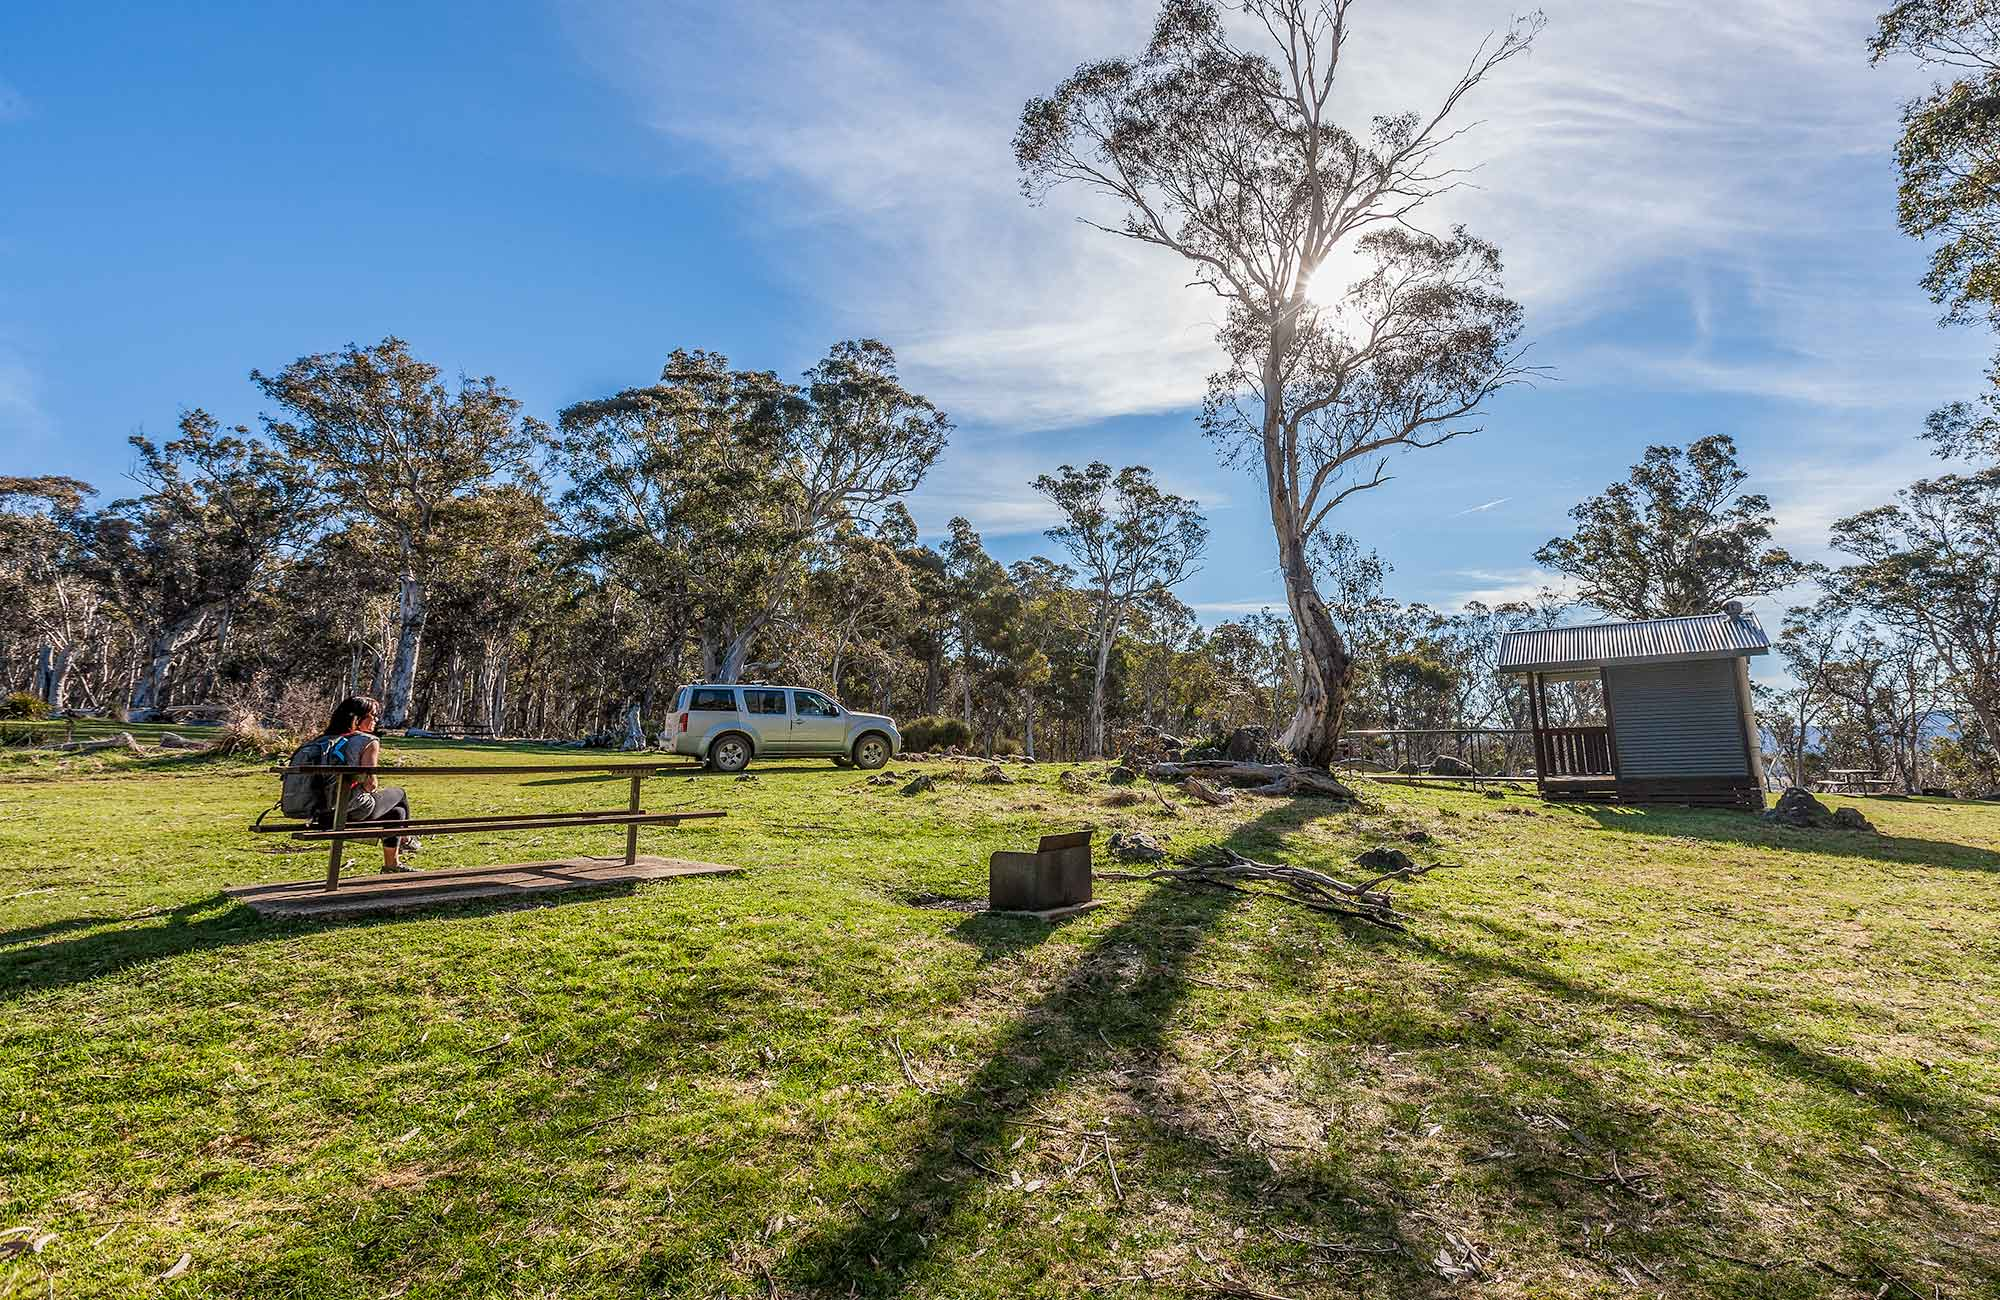 Cooleman Mountain campground, Kosciuszko National Park. Photo: Murray Vanderveer